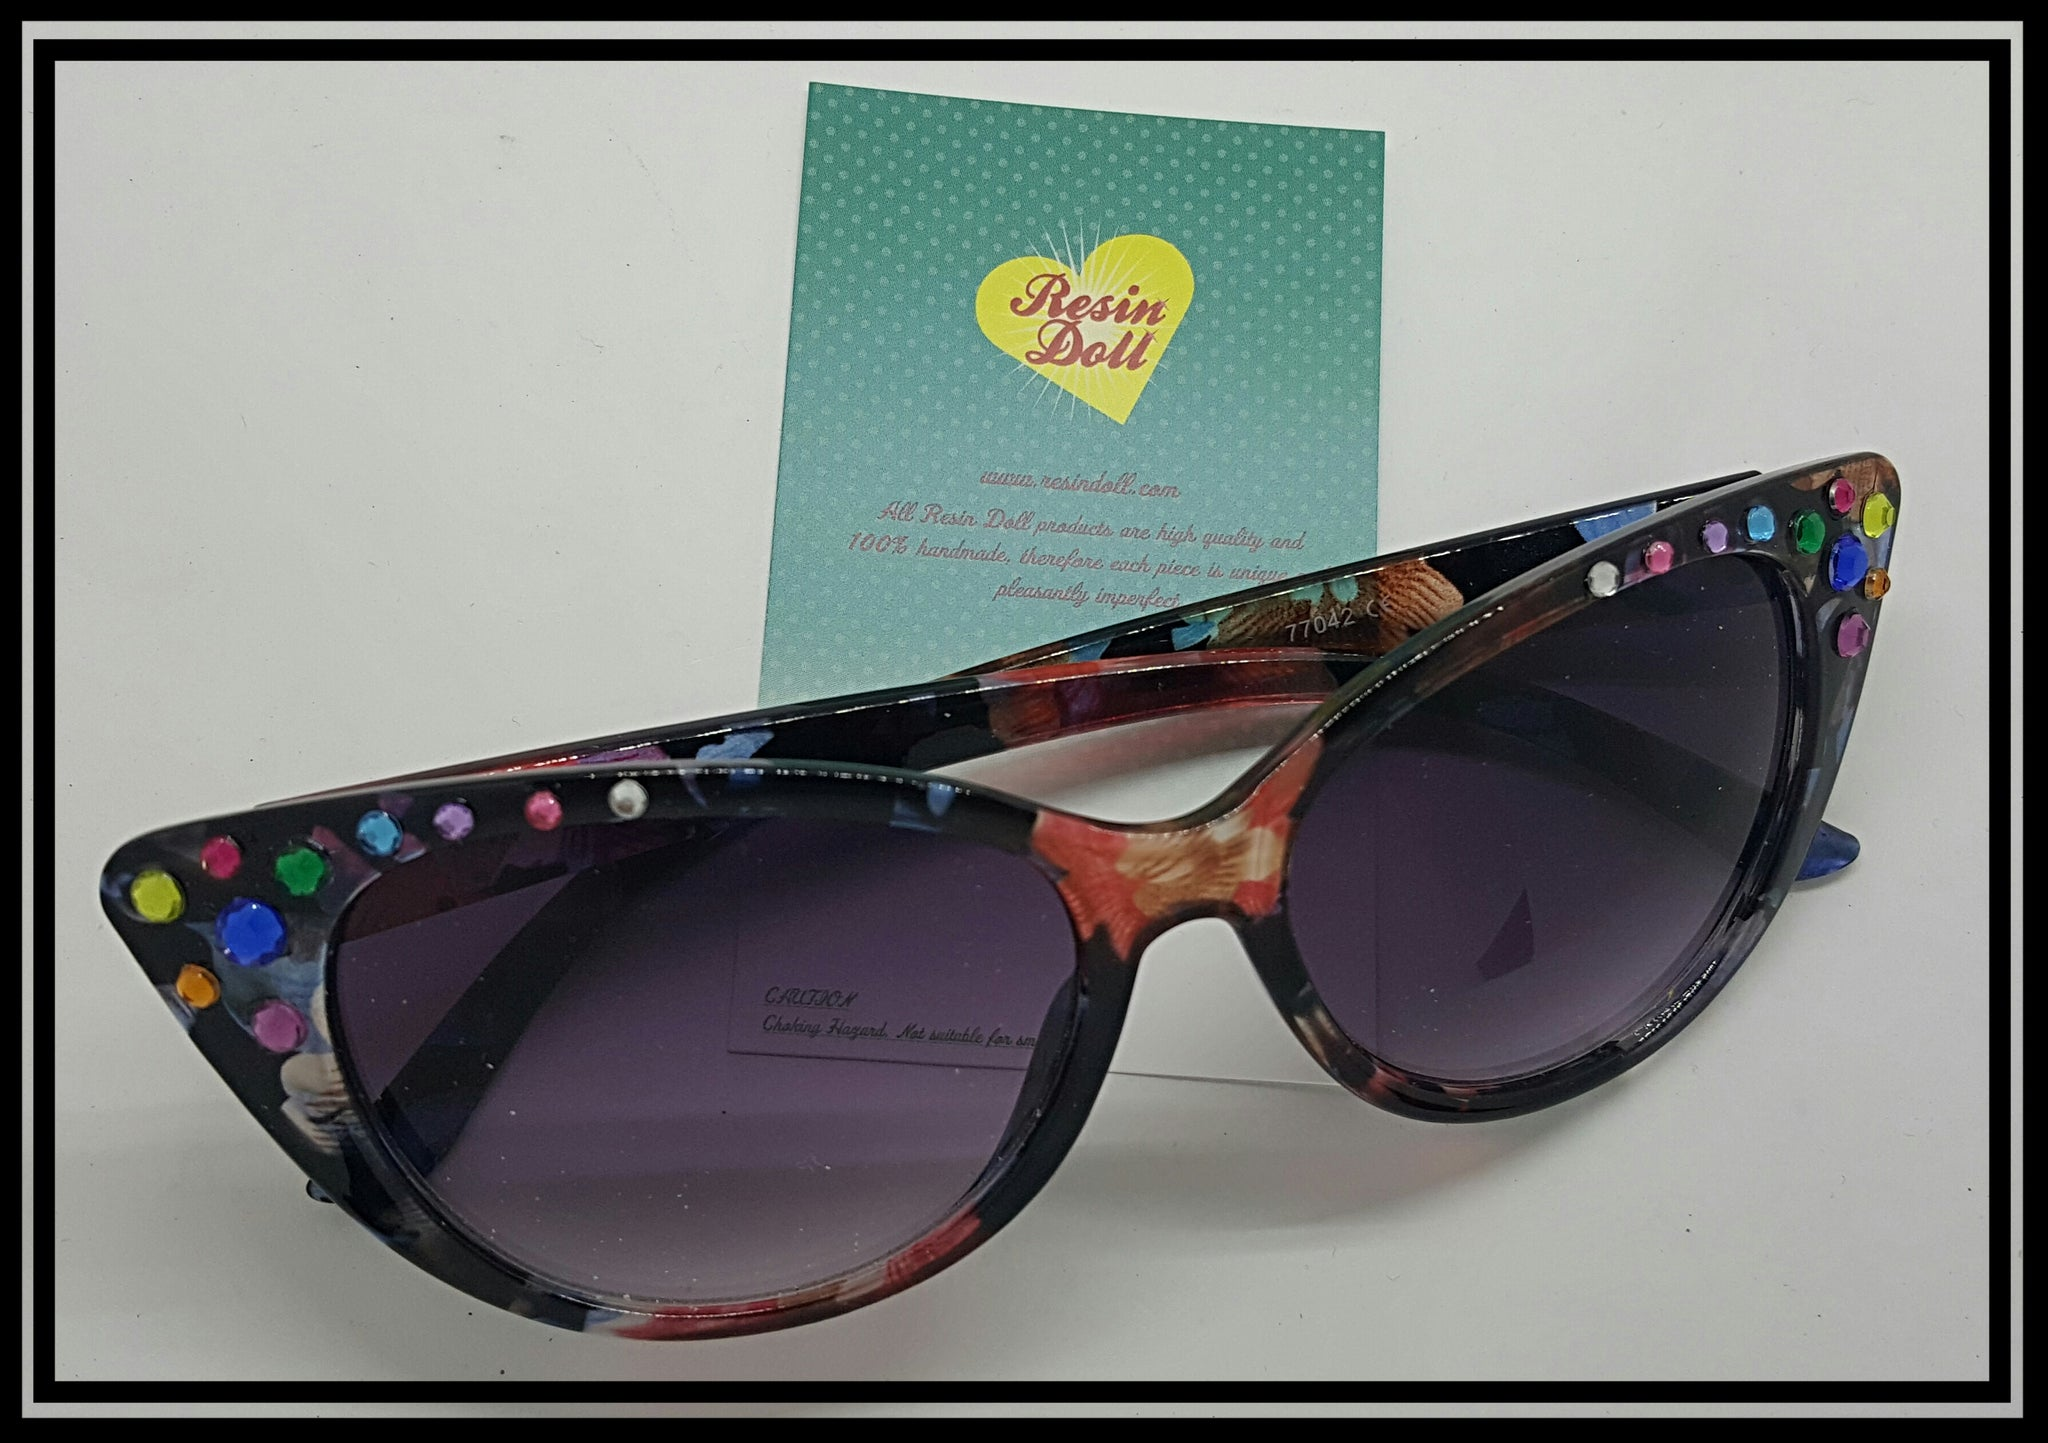 Rainbow bling on floral sunglasses